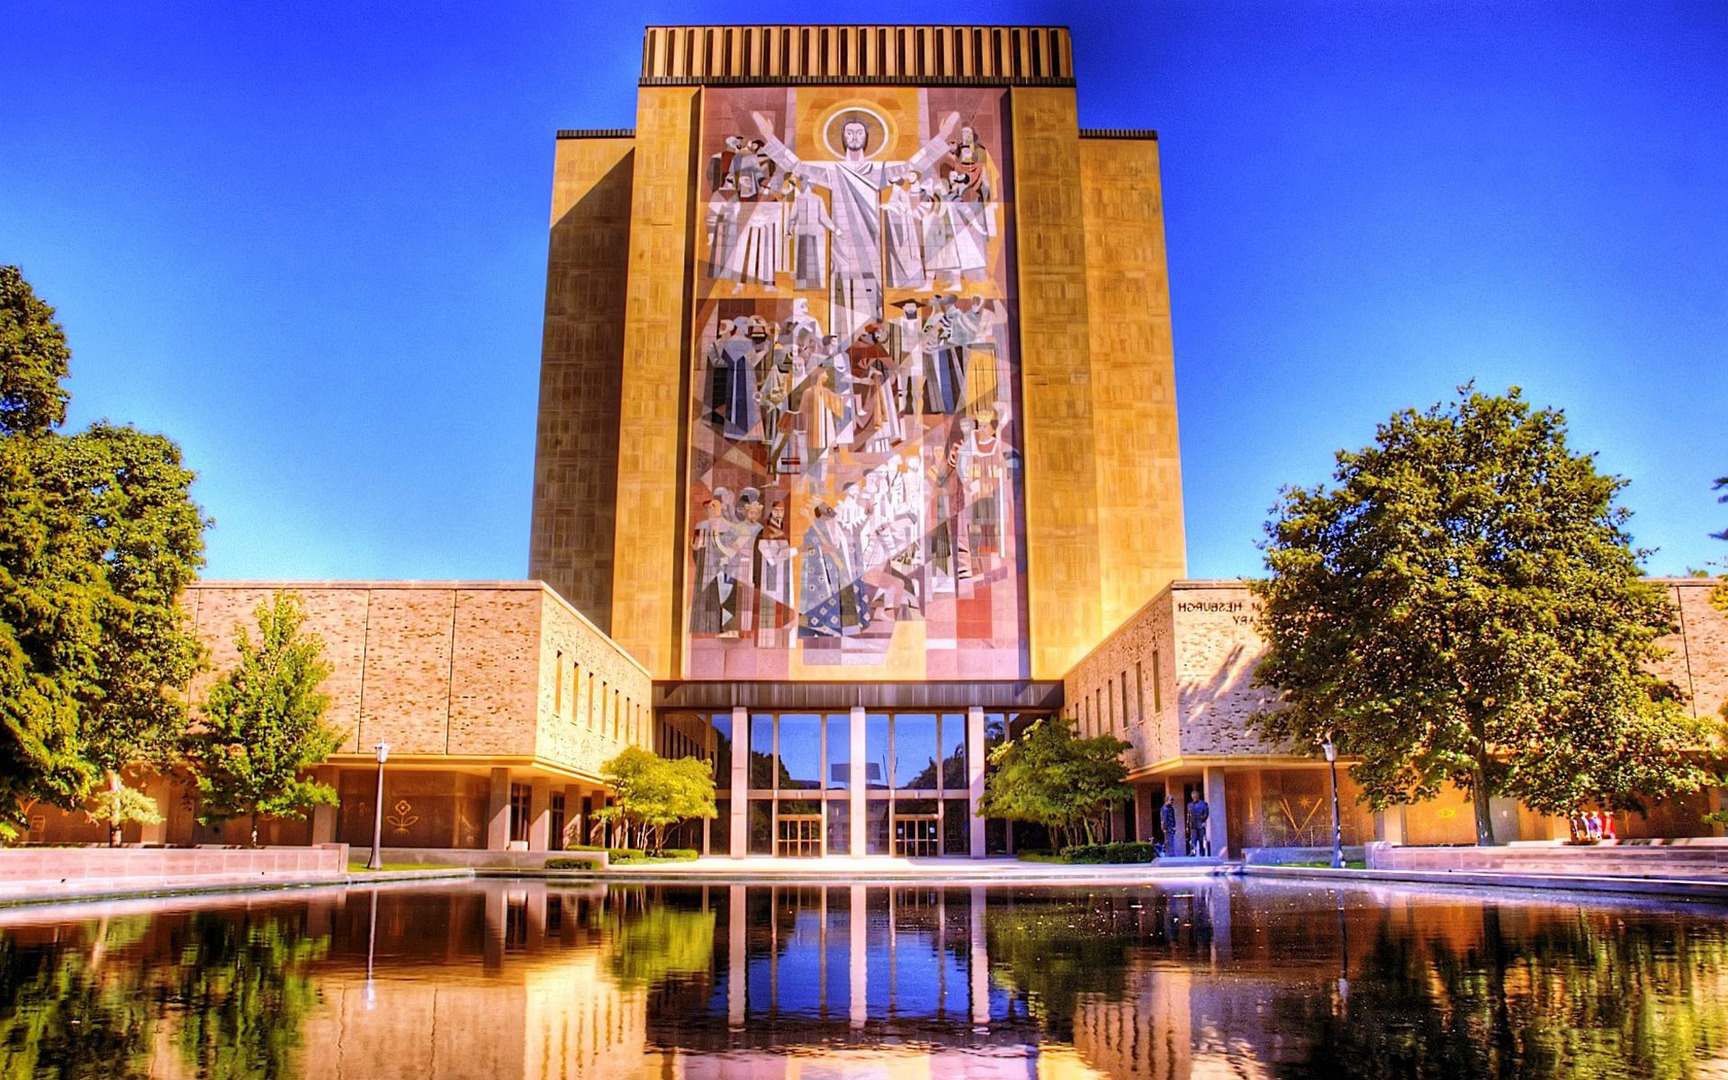 Theodore Hesburgh Library, University of Notre Dame